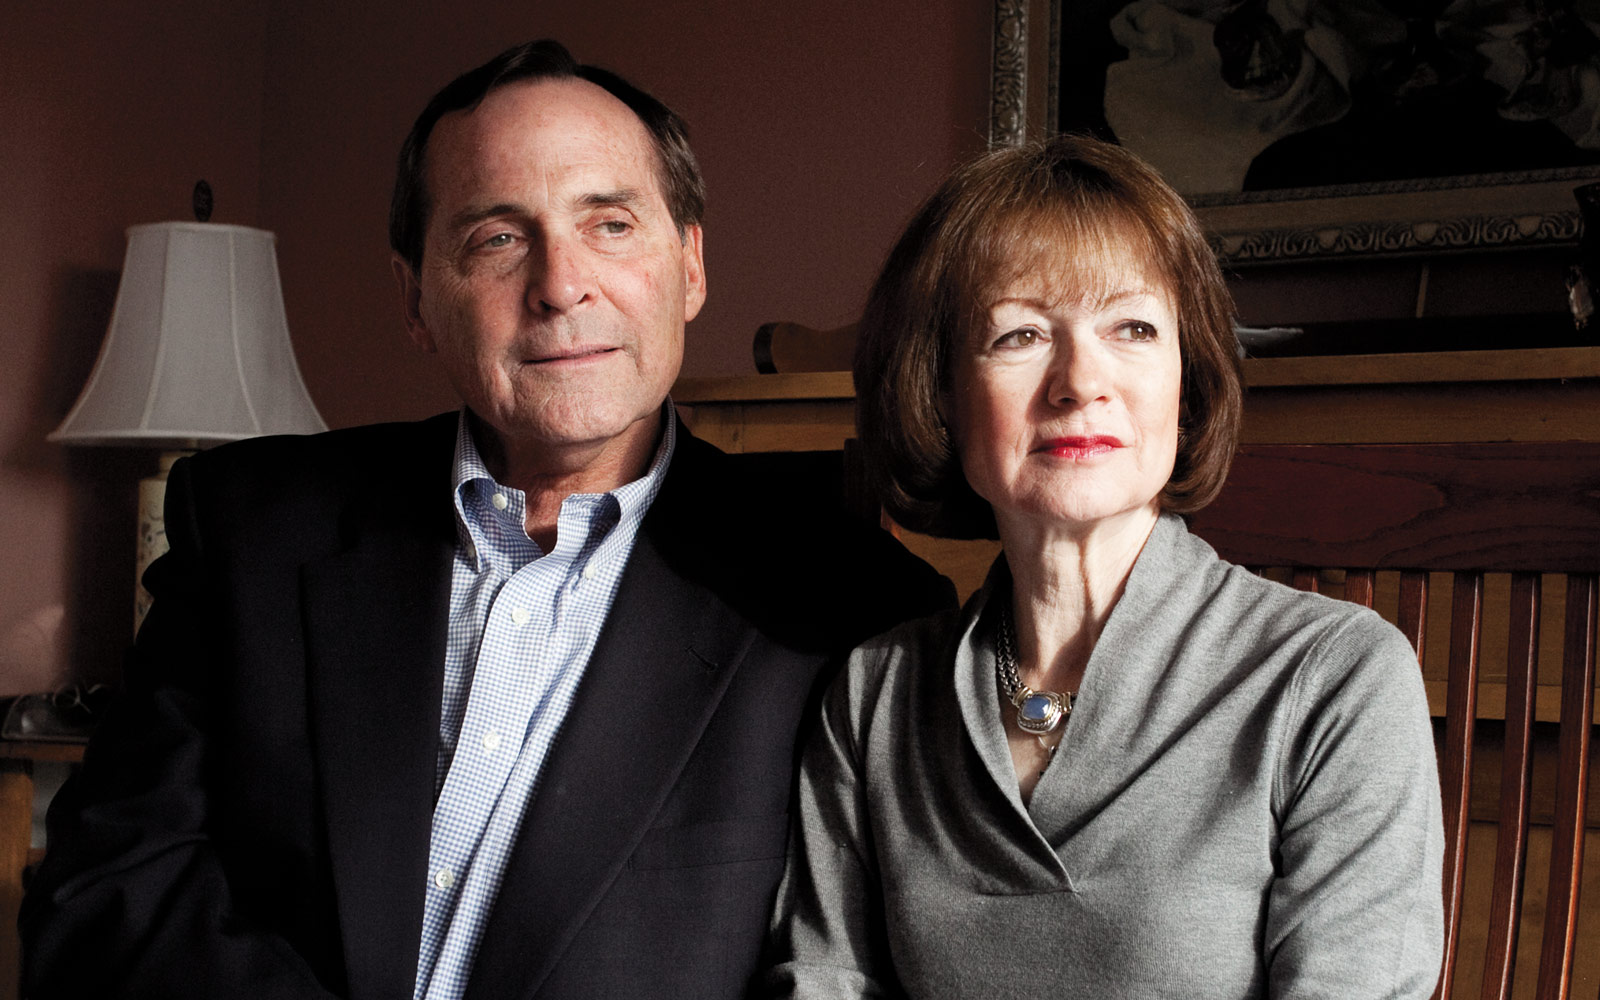 Jim and Nancy Petro have dedicated themselves to freeing innocent men and women from prison.